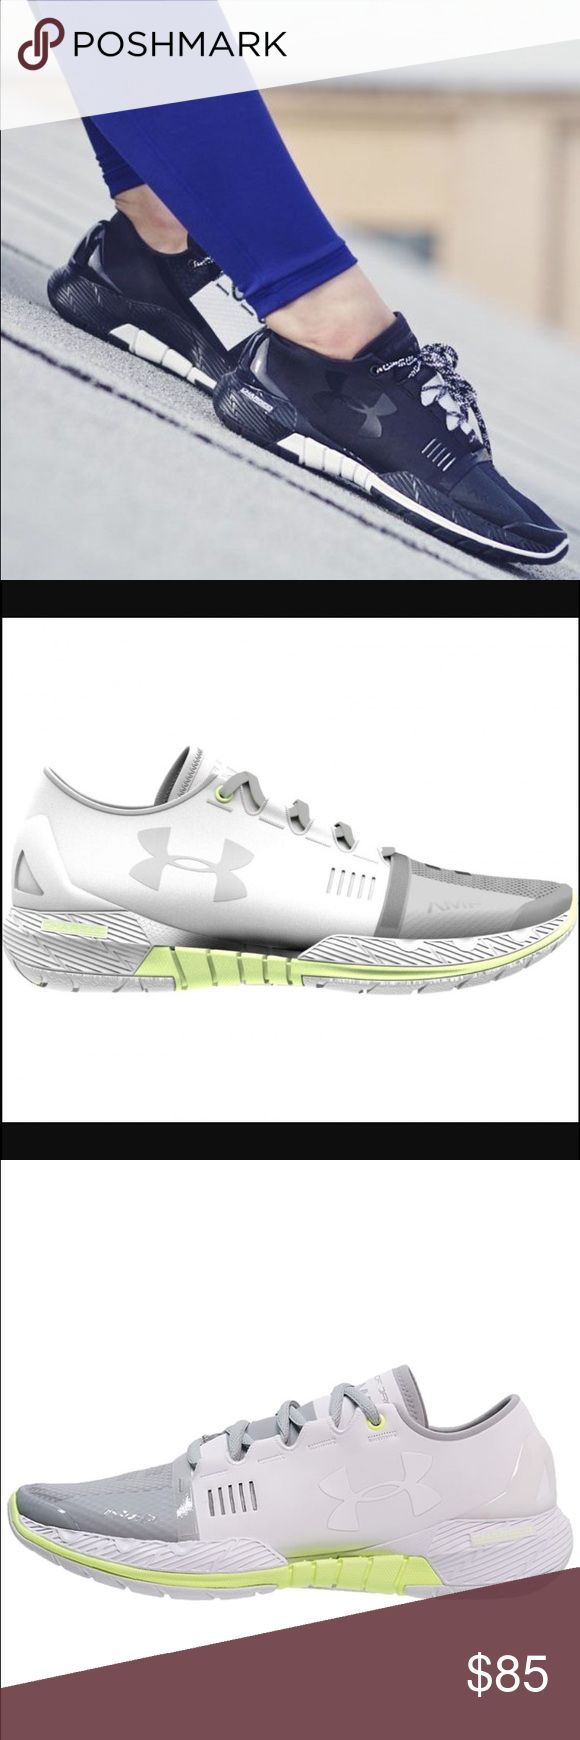 Under Armor SpeedForm AMP New pair of Under Armour training shoes. Great for workouts or running to the grocery store. They are the white and green color in the last three photos. Amazing shoes, only getting rid of them because I'm a trainer and am cleaning out my shoe closet!! Only worn indoors twice. Retail for $120 - selling them for $85! Under Armour Shoes Athletic Shoes